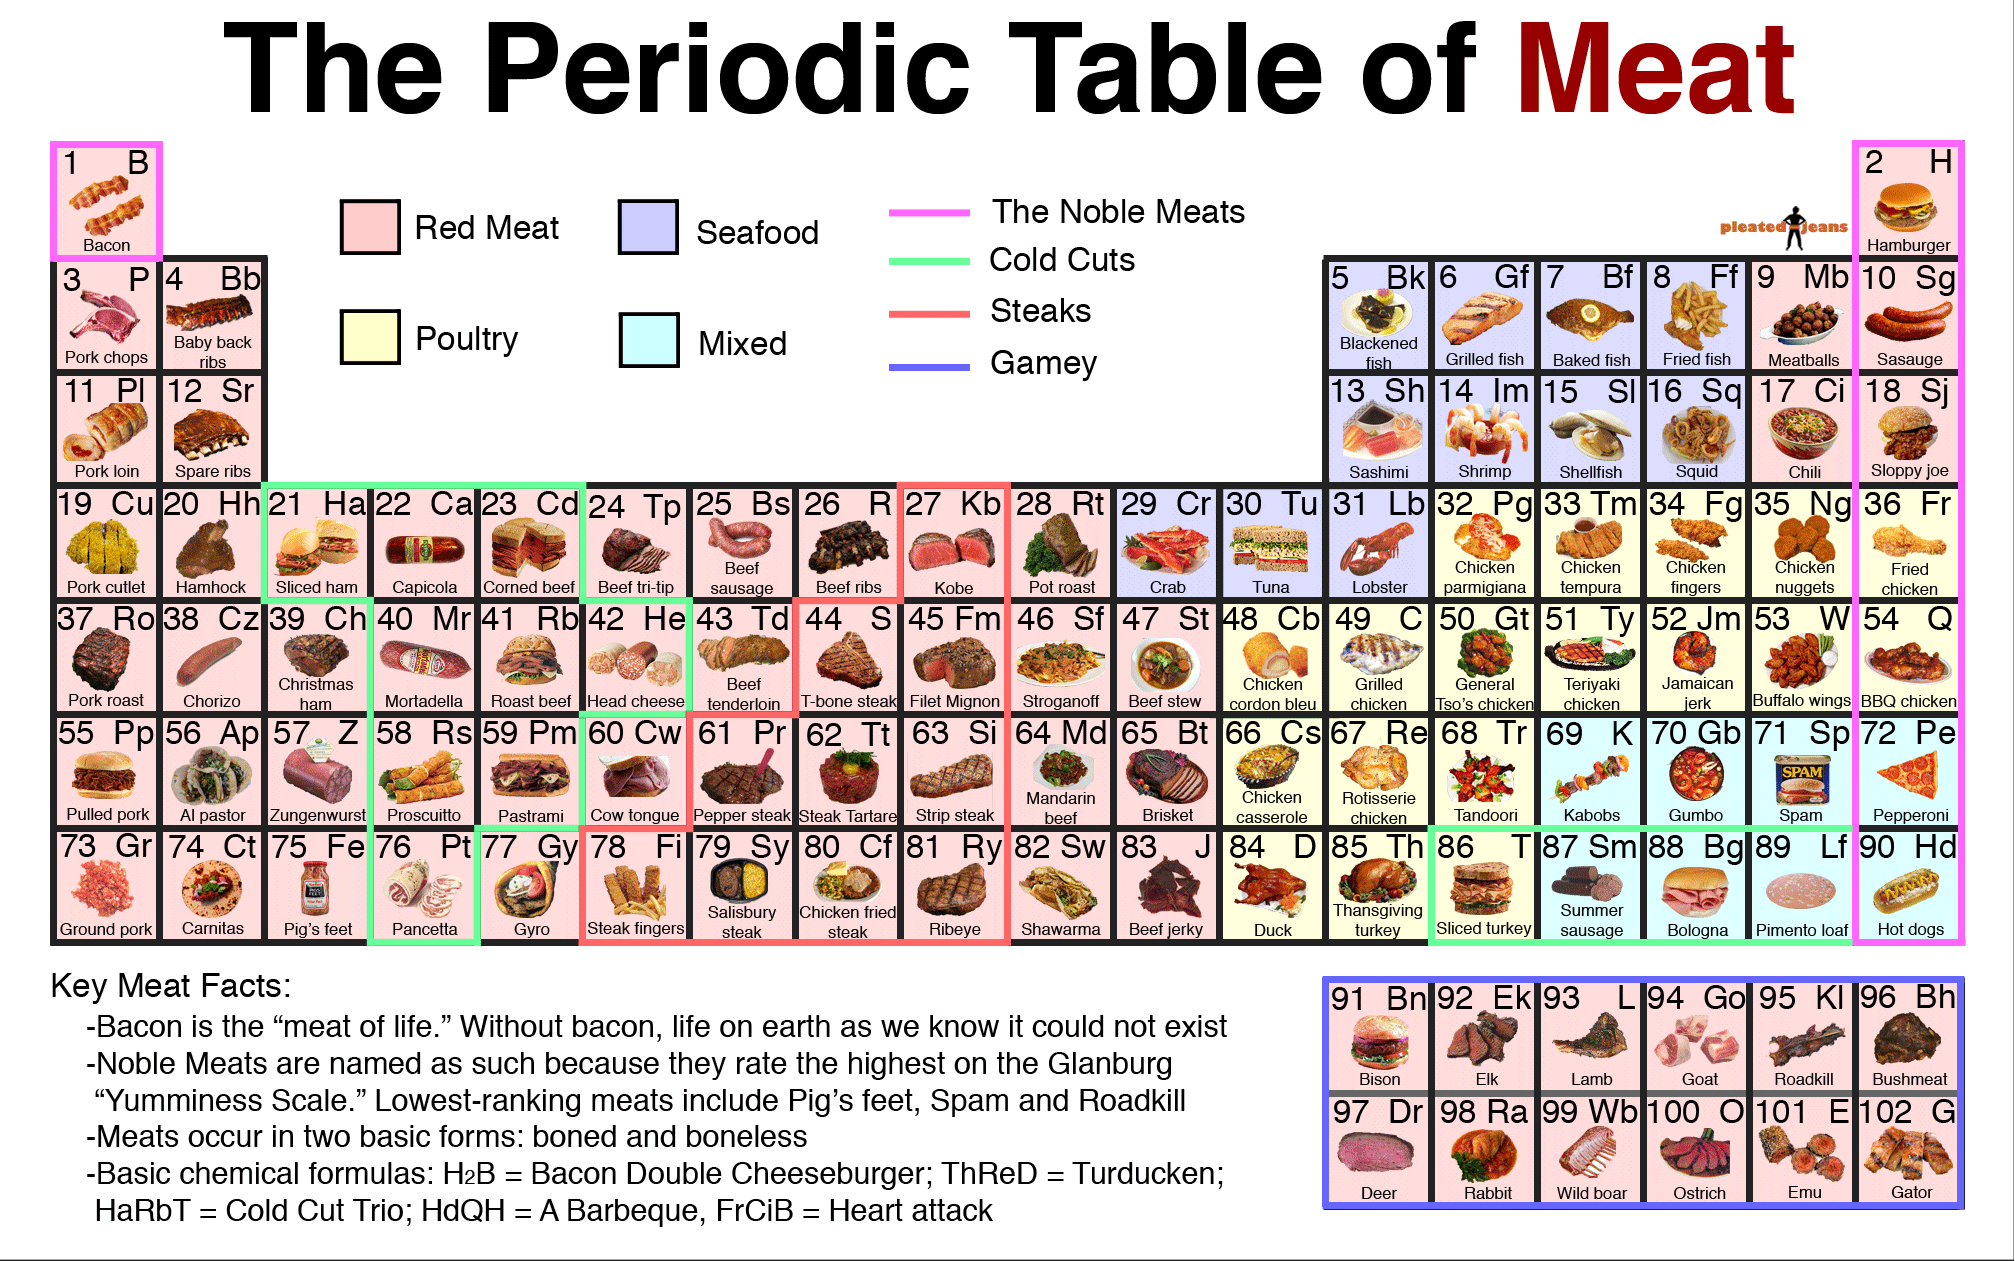 The periodic table of meat ar15 archive ideas for the the periodic table of meat ar15 archive gamestrikefo Gallery